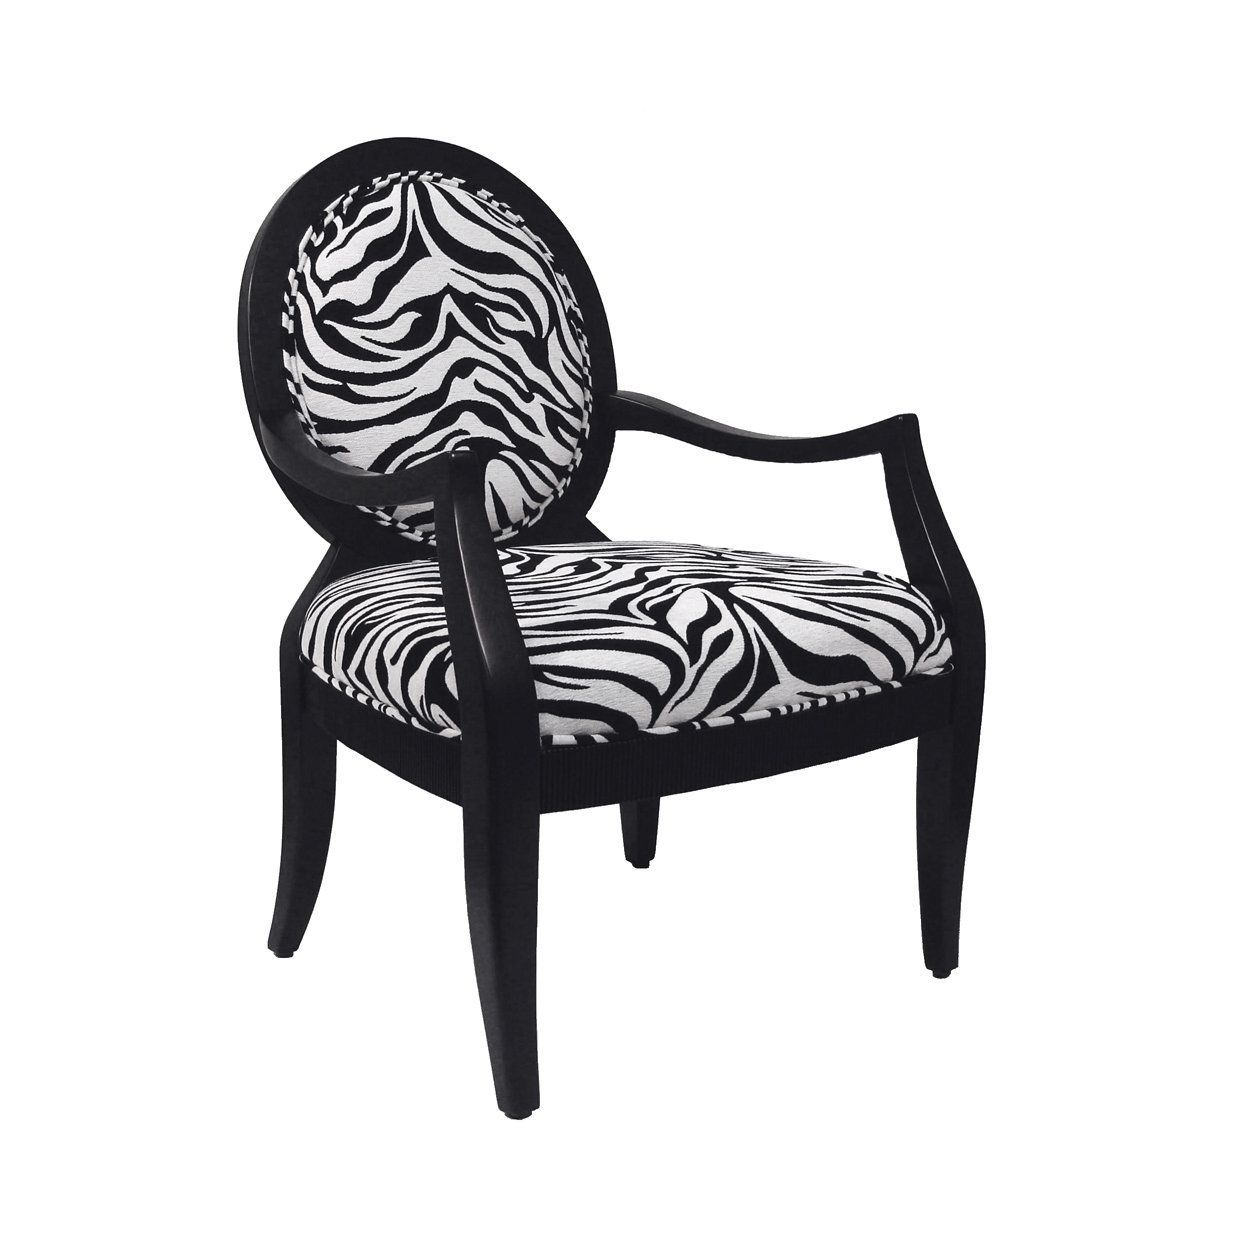 Royal Manufacturing Inc. Black Frame Chair With Zebra Fabric